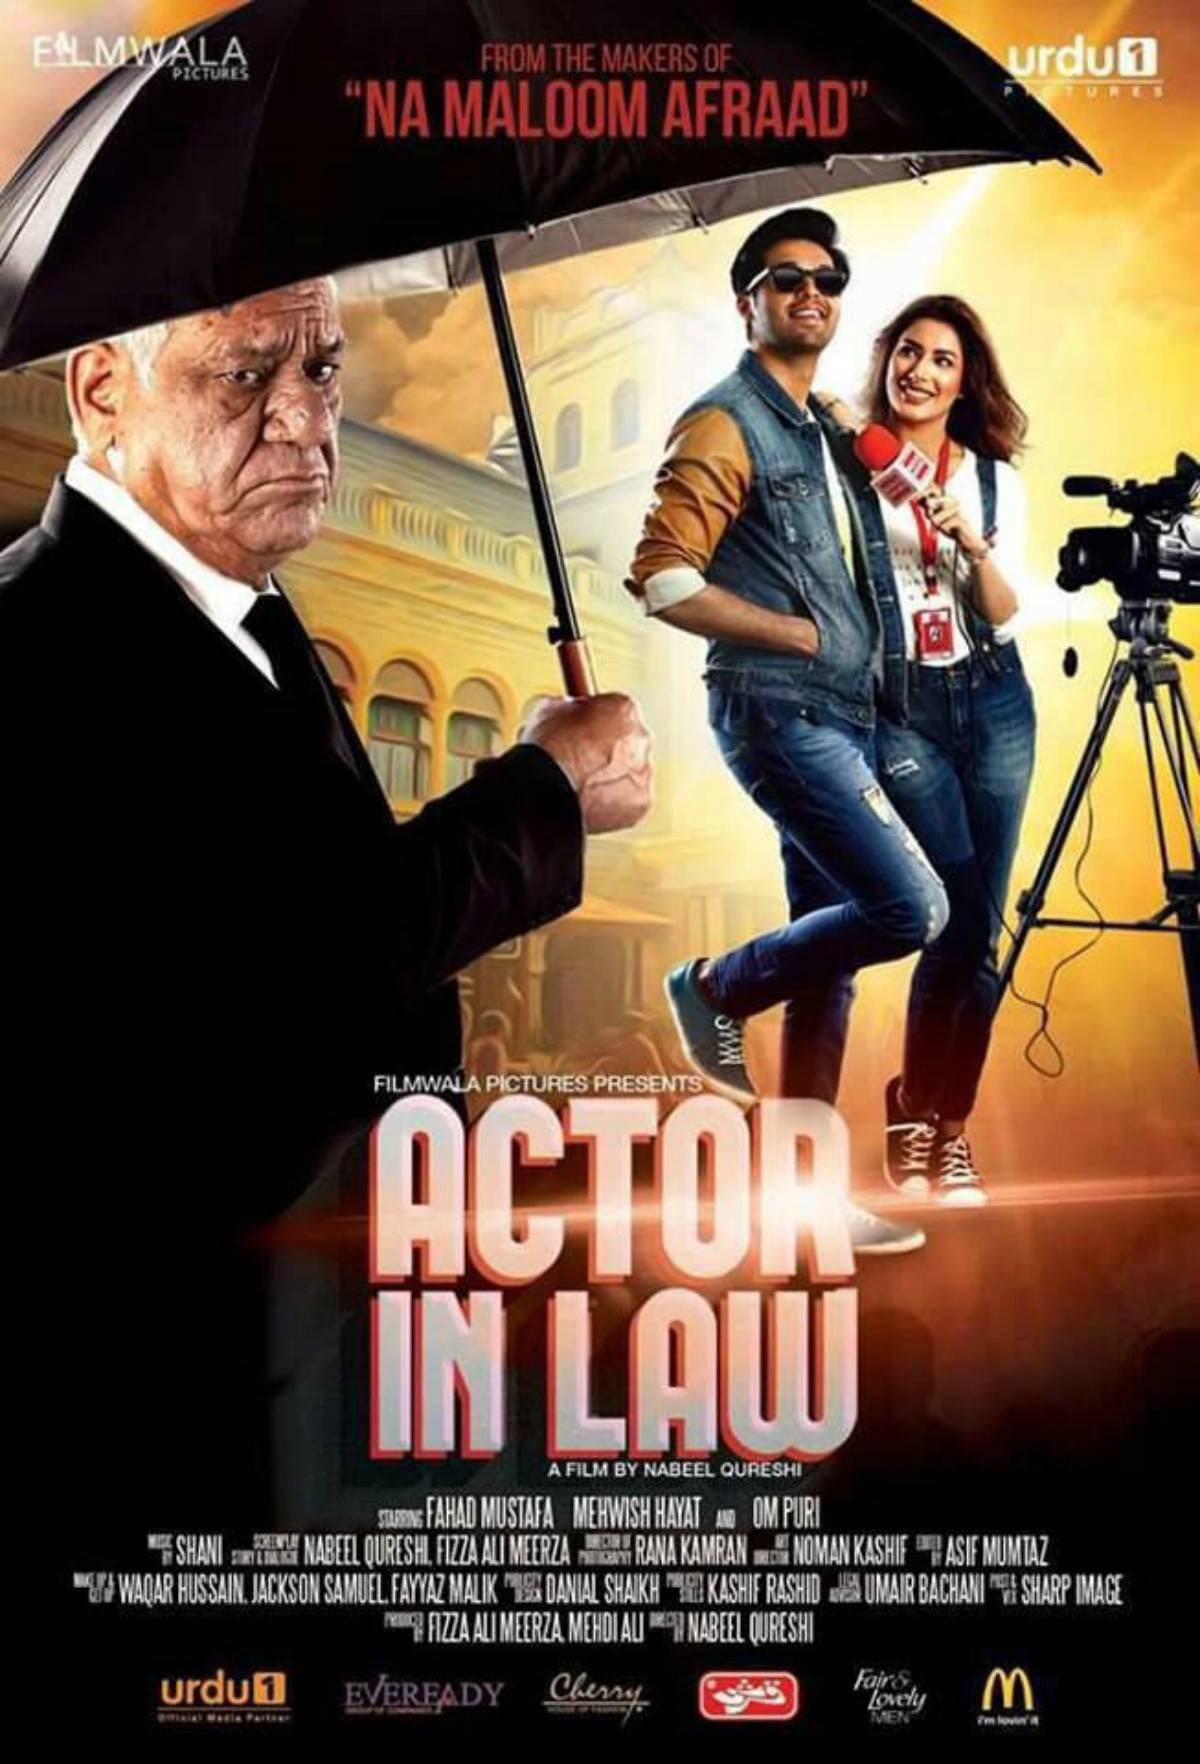 actor in law poster